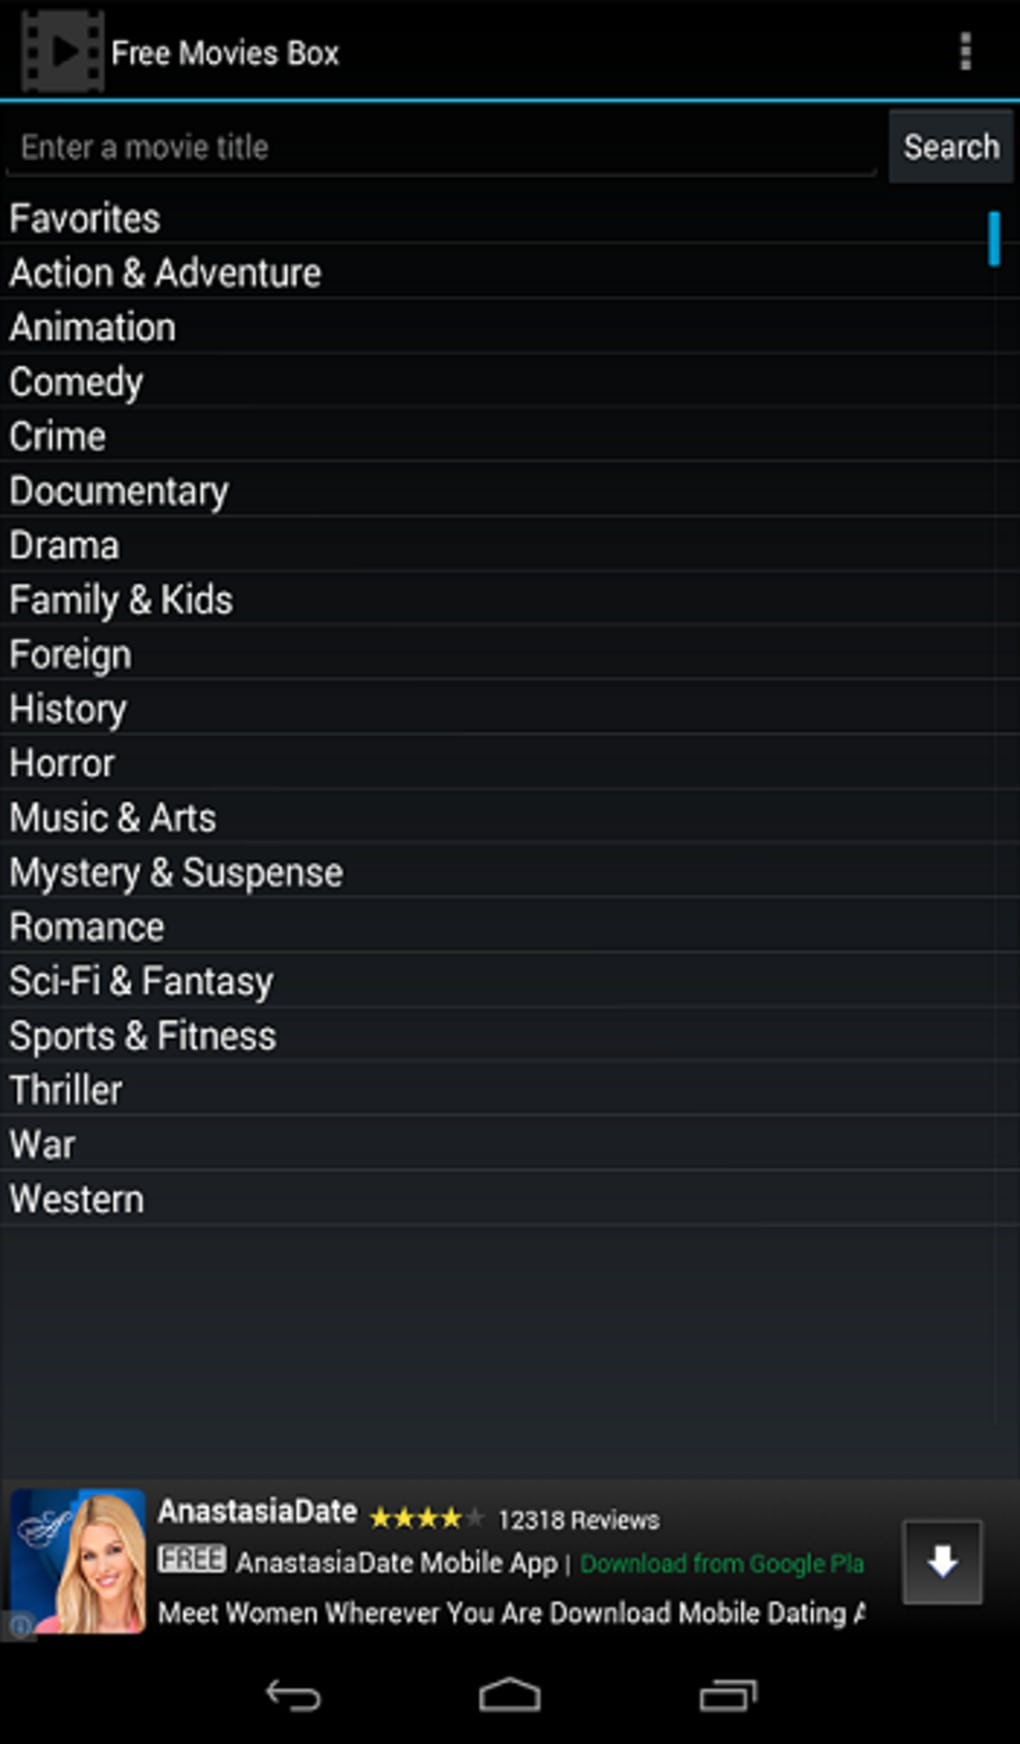 Free Movies Box for Android - Download